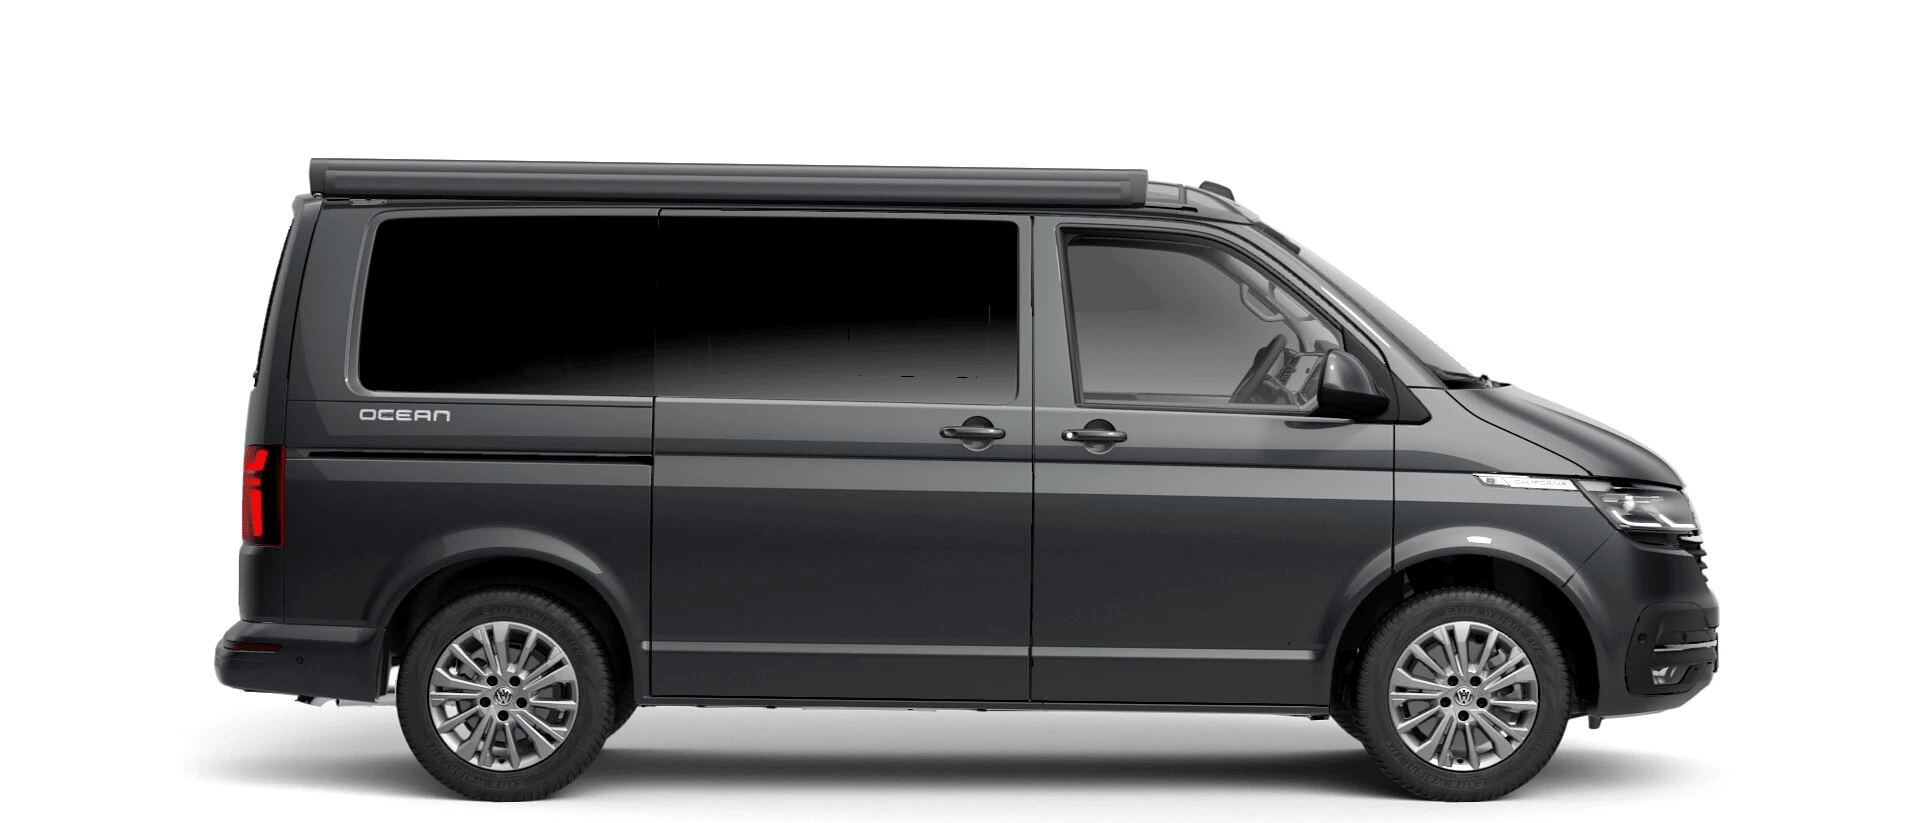 Volkswagen Van Range California - Available In Metallic Indium Grey